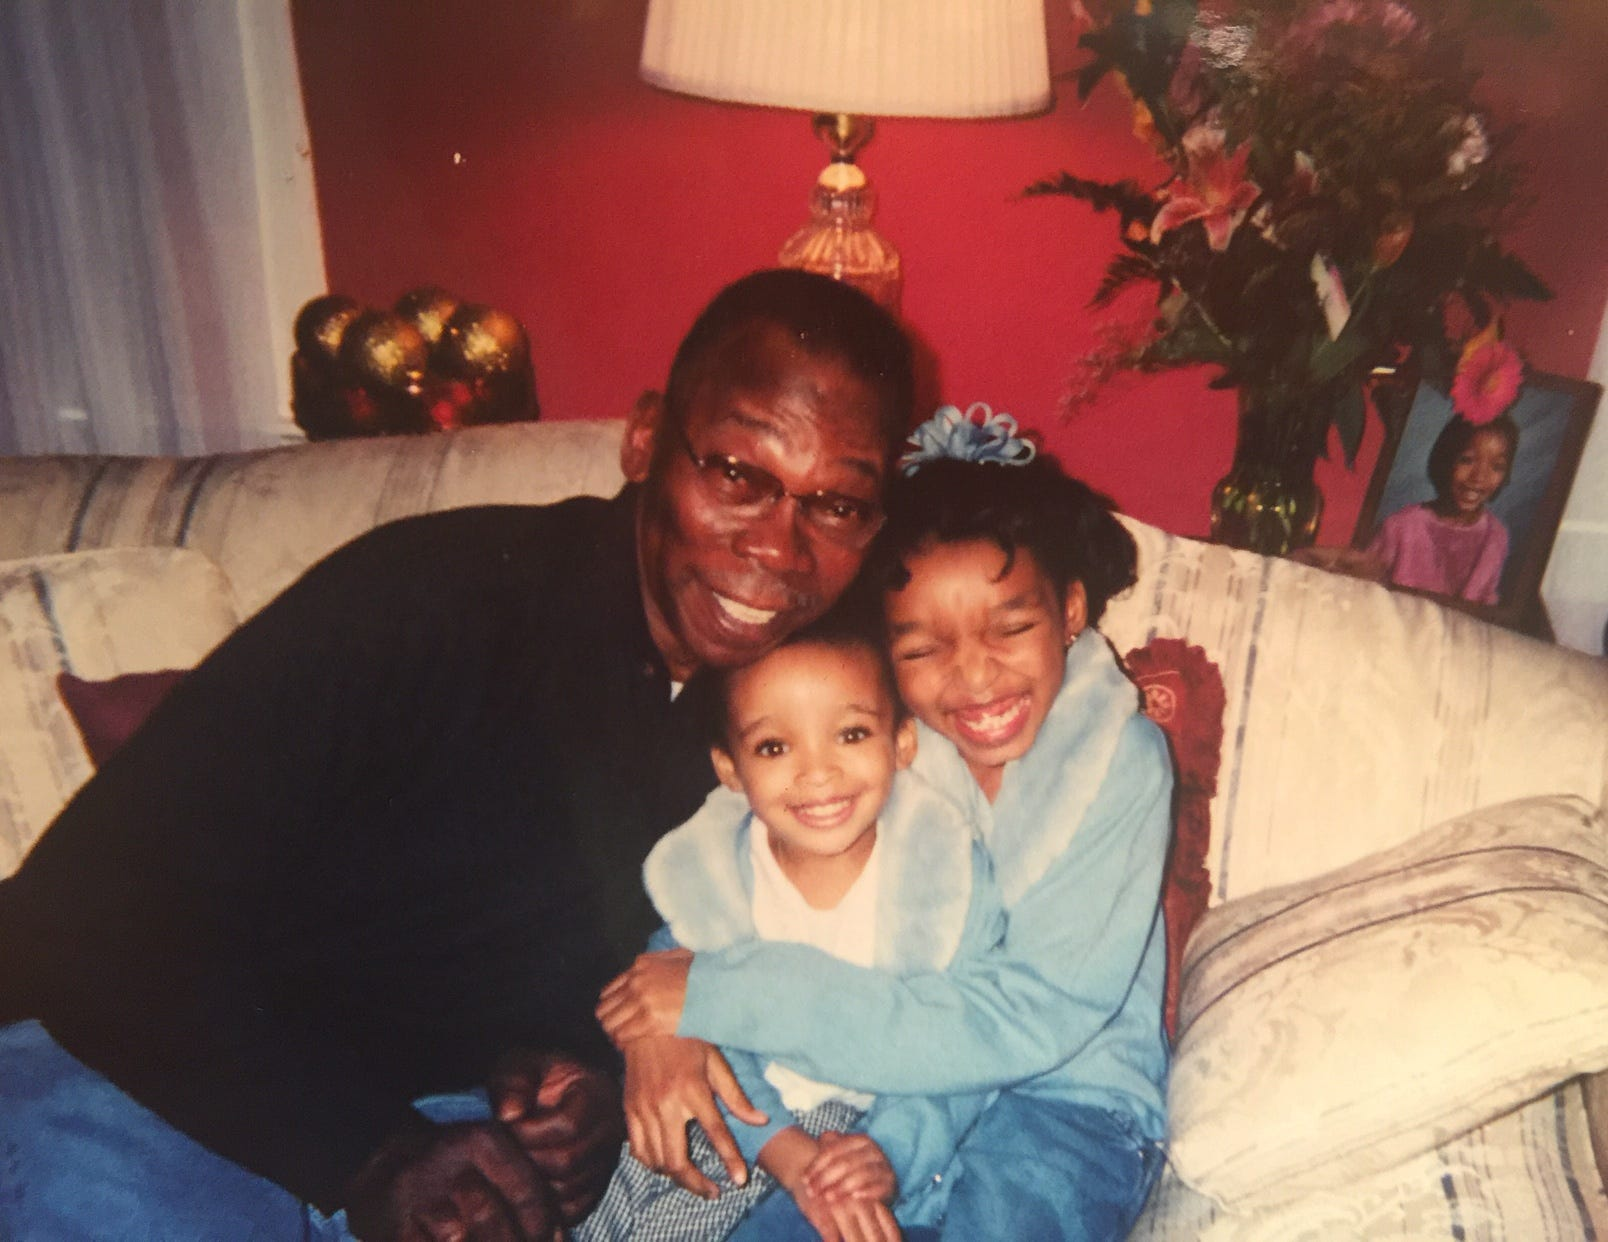 Shaylah Brown spending the afternoon at her grandparents' house in 2002 on Maple Avenue in Hillside, New Jersey, sitting with her grandfather and younger sister Brianna.